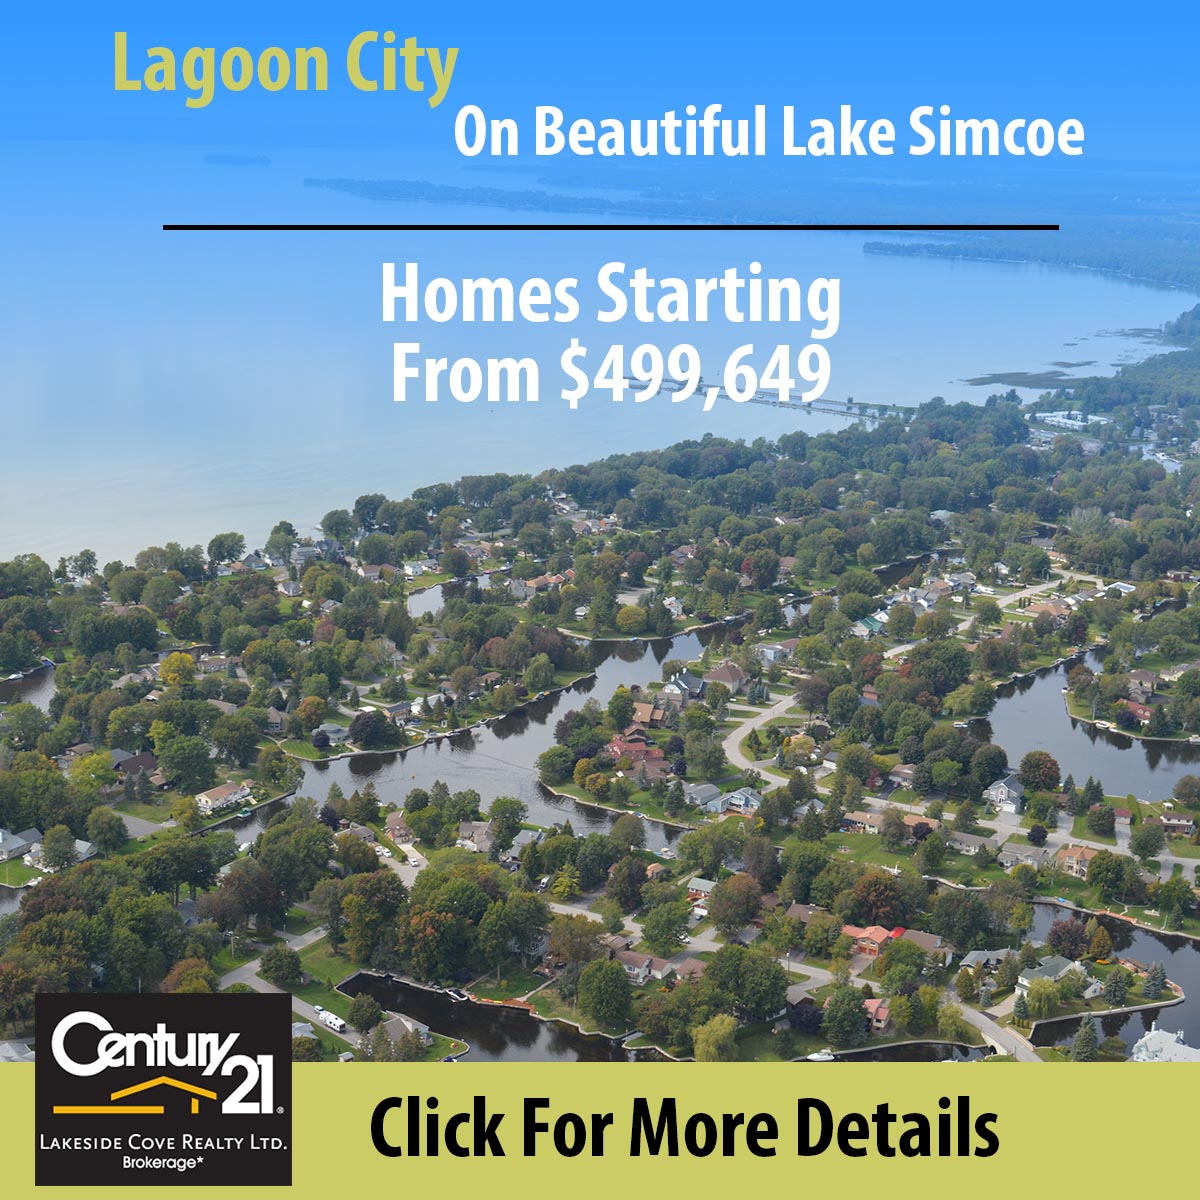 lakeside cove realty